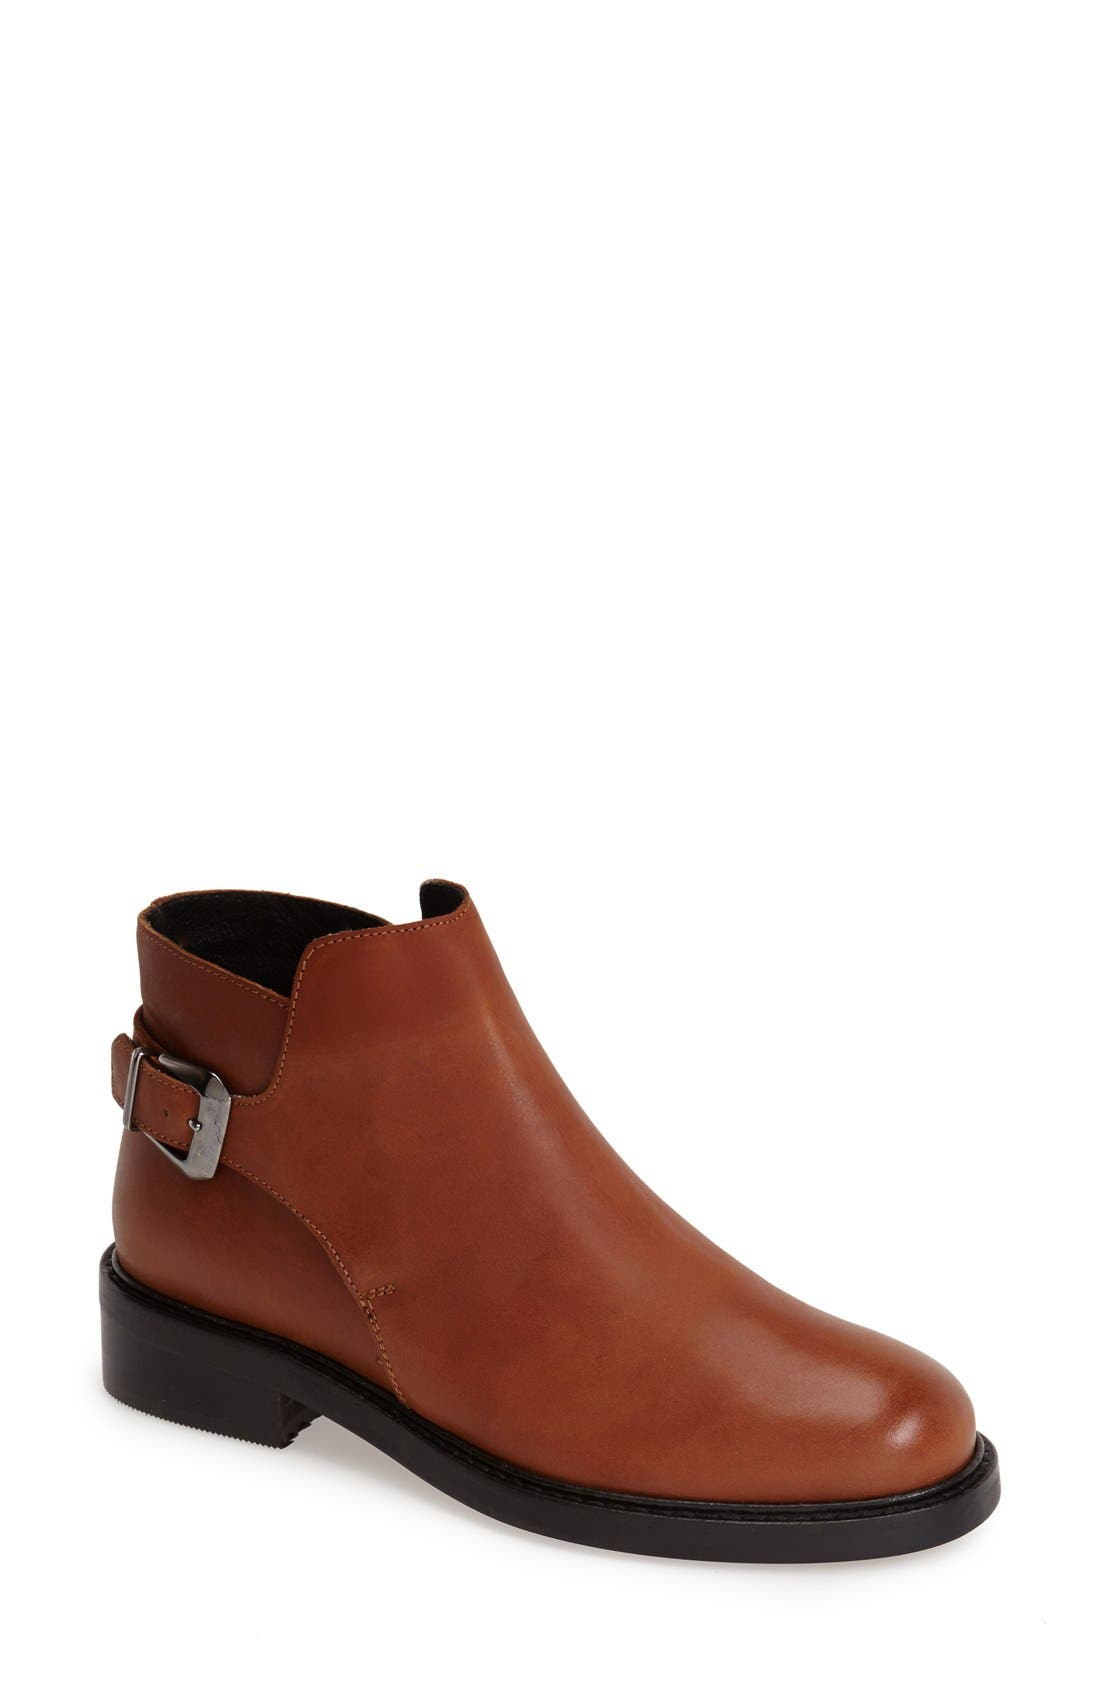 Main Image - Topshop 'Actor' Leather Ankle Boot (Women)